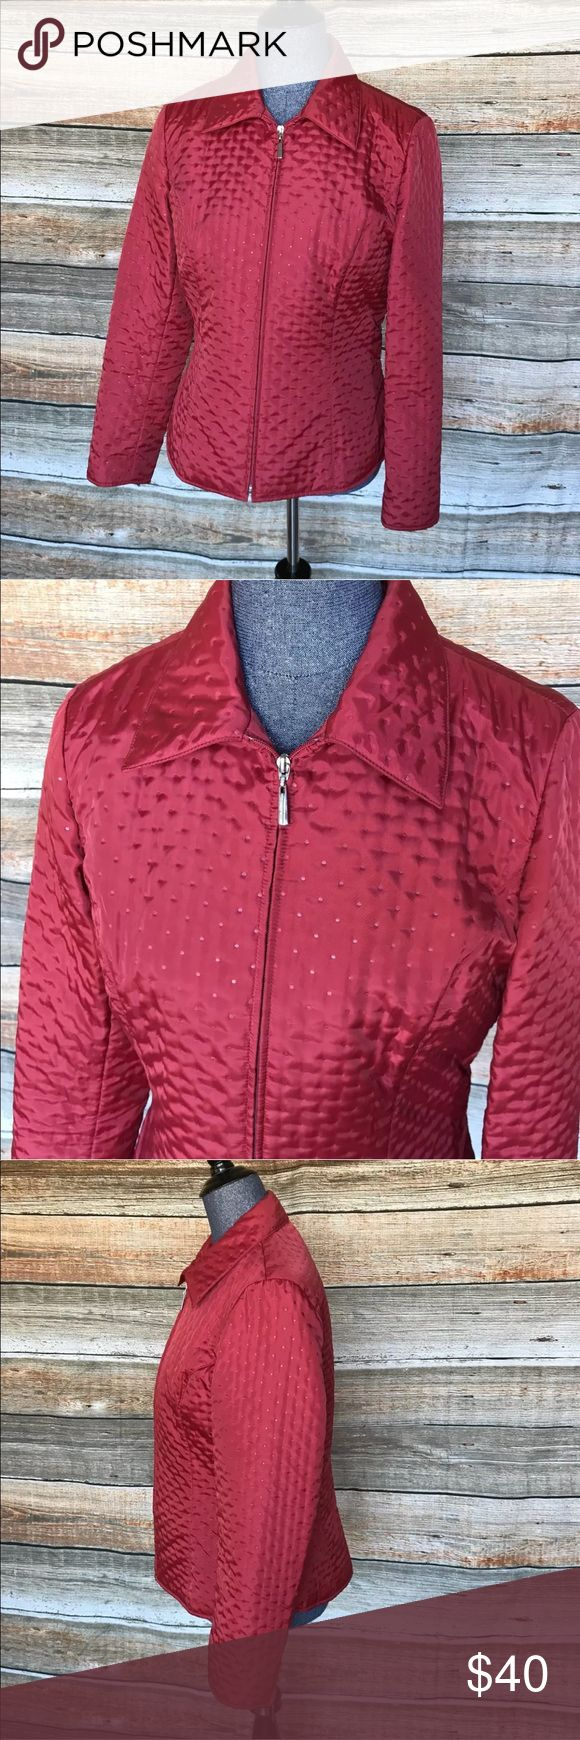 """Quilted Talbots Red dot Zip up jacket size 8 DETAILS: This is a like new Talbots polka dot Quilted red jacket as pictured.  Classy  Lightweight  Size 8  Bust line around: 38""""  Length:24""""   Smoke/Pet free home Talbots Jackets & Coats Puffers"""